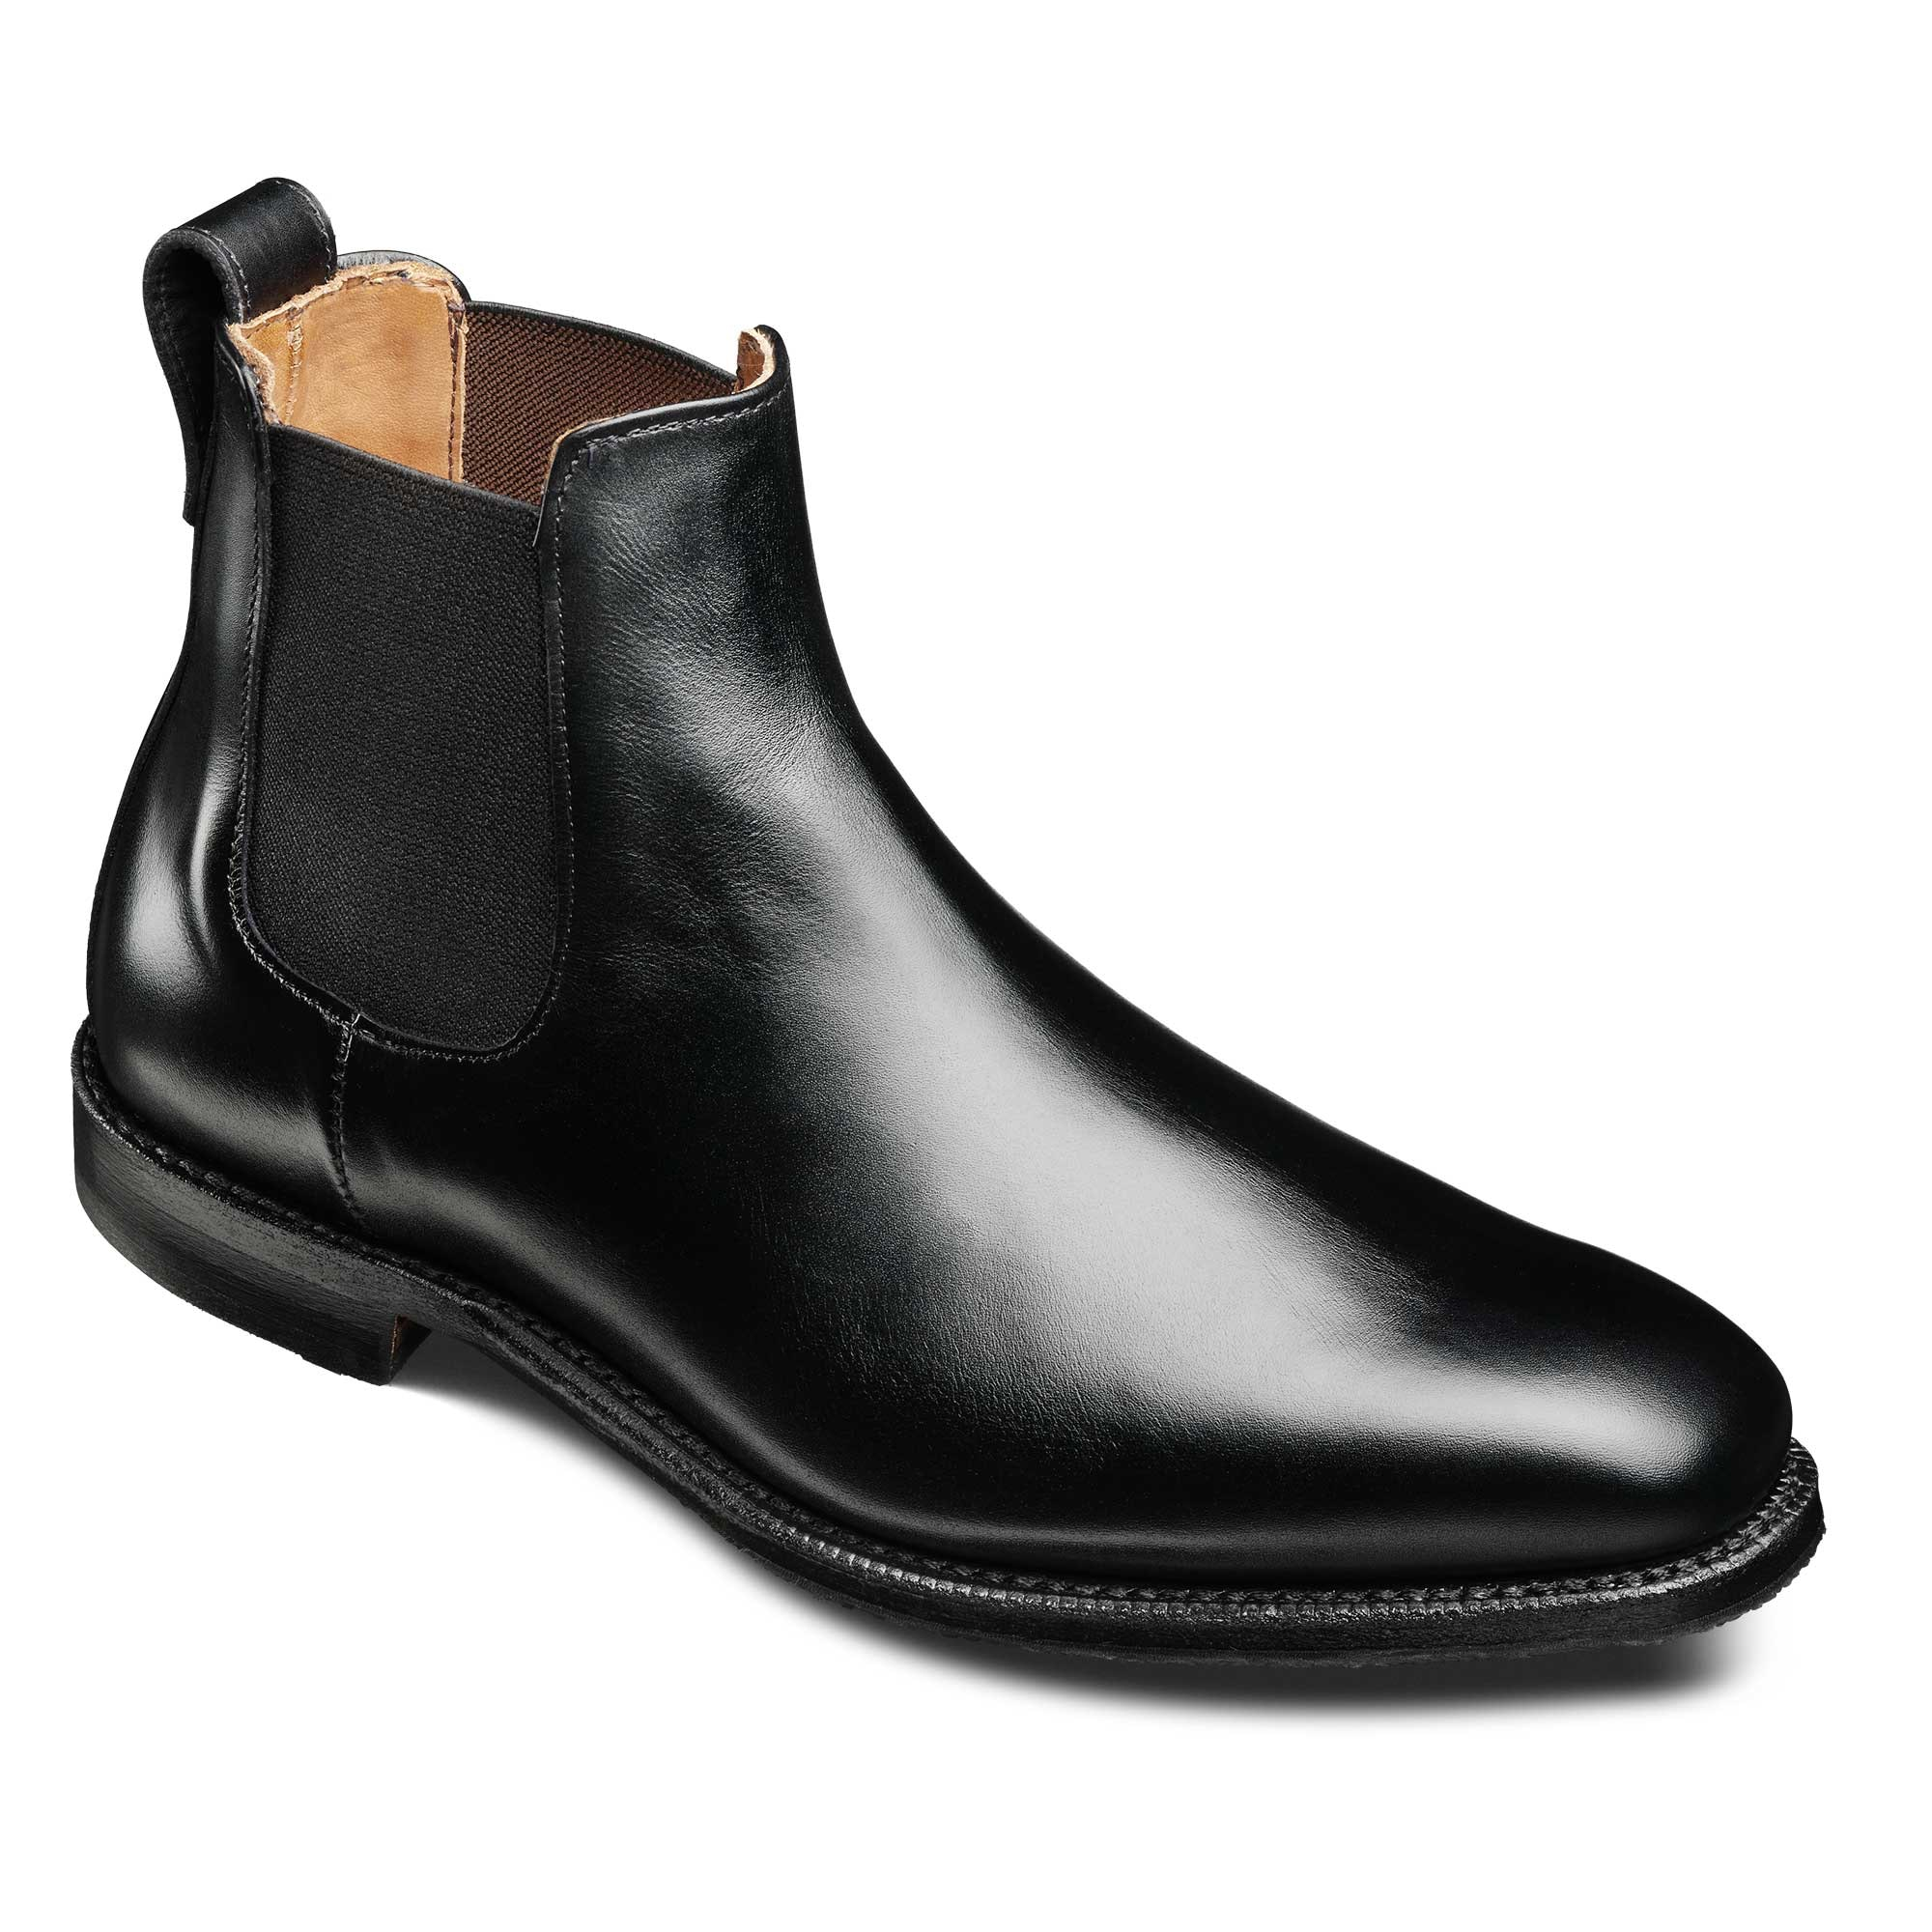 Liverpool Chelsea Dress Boot by Allen Edmonds